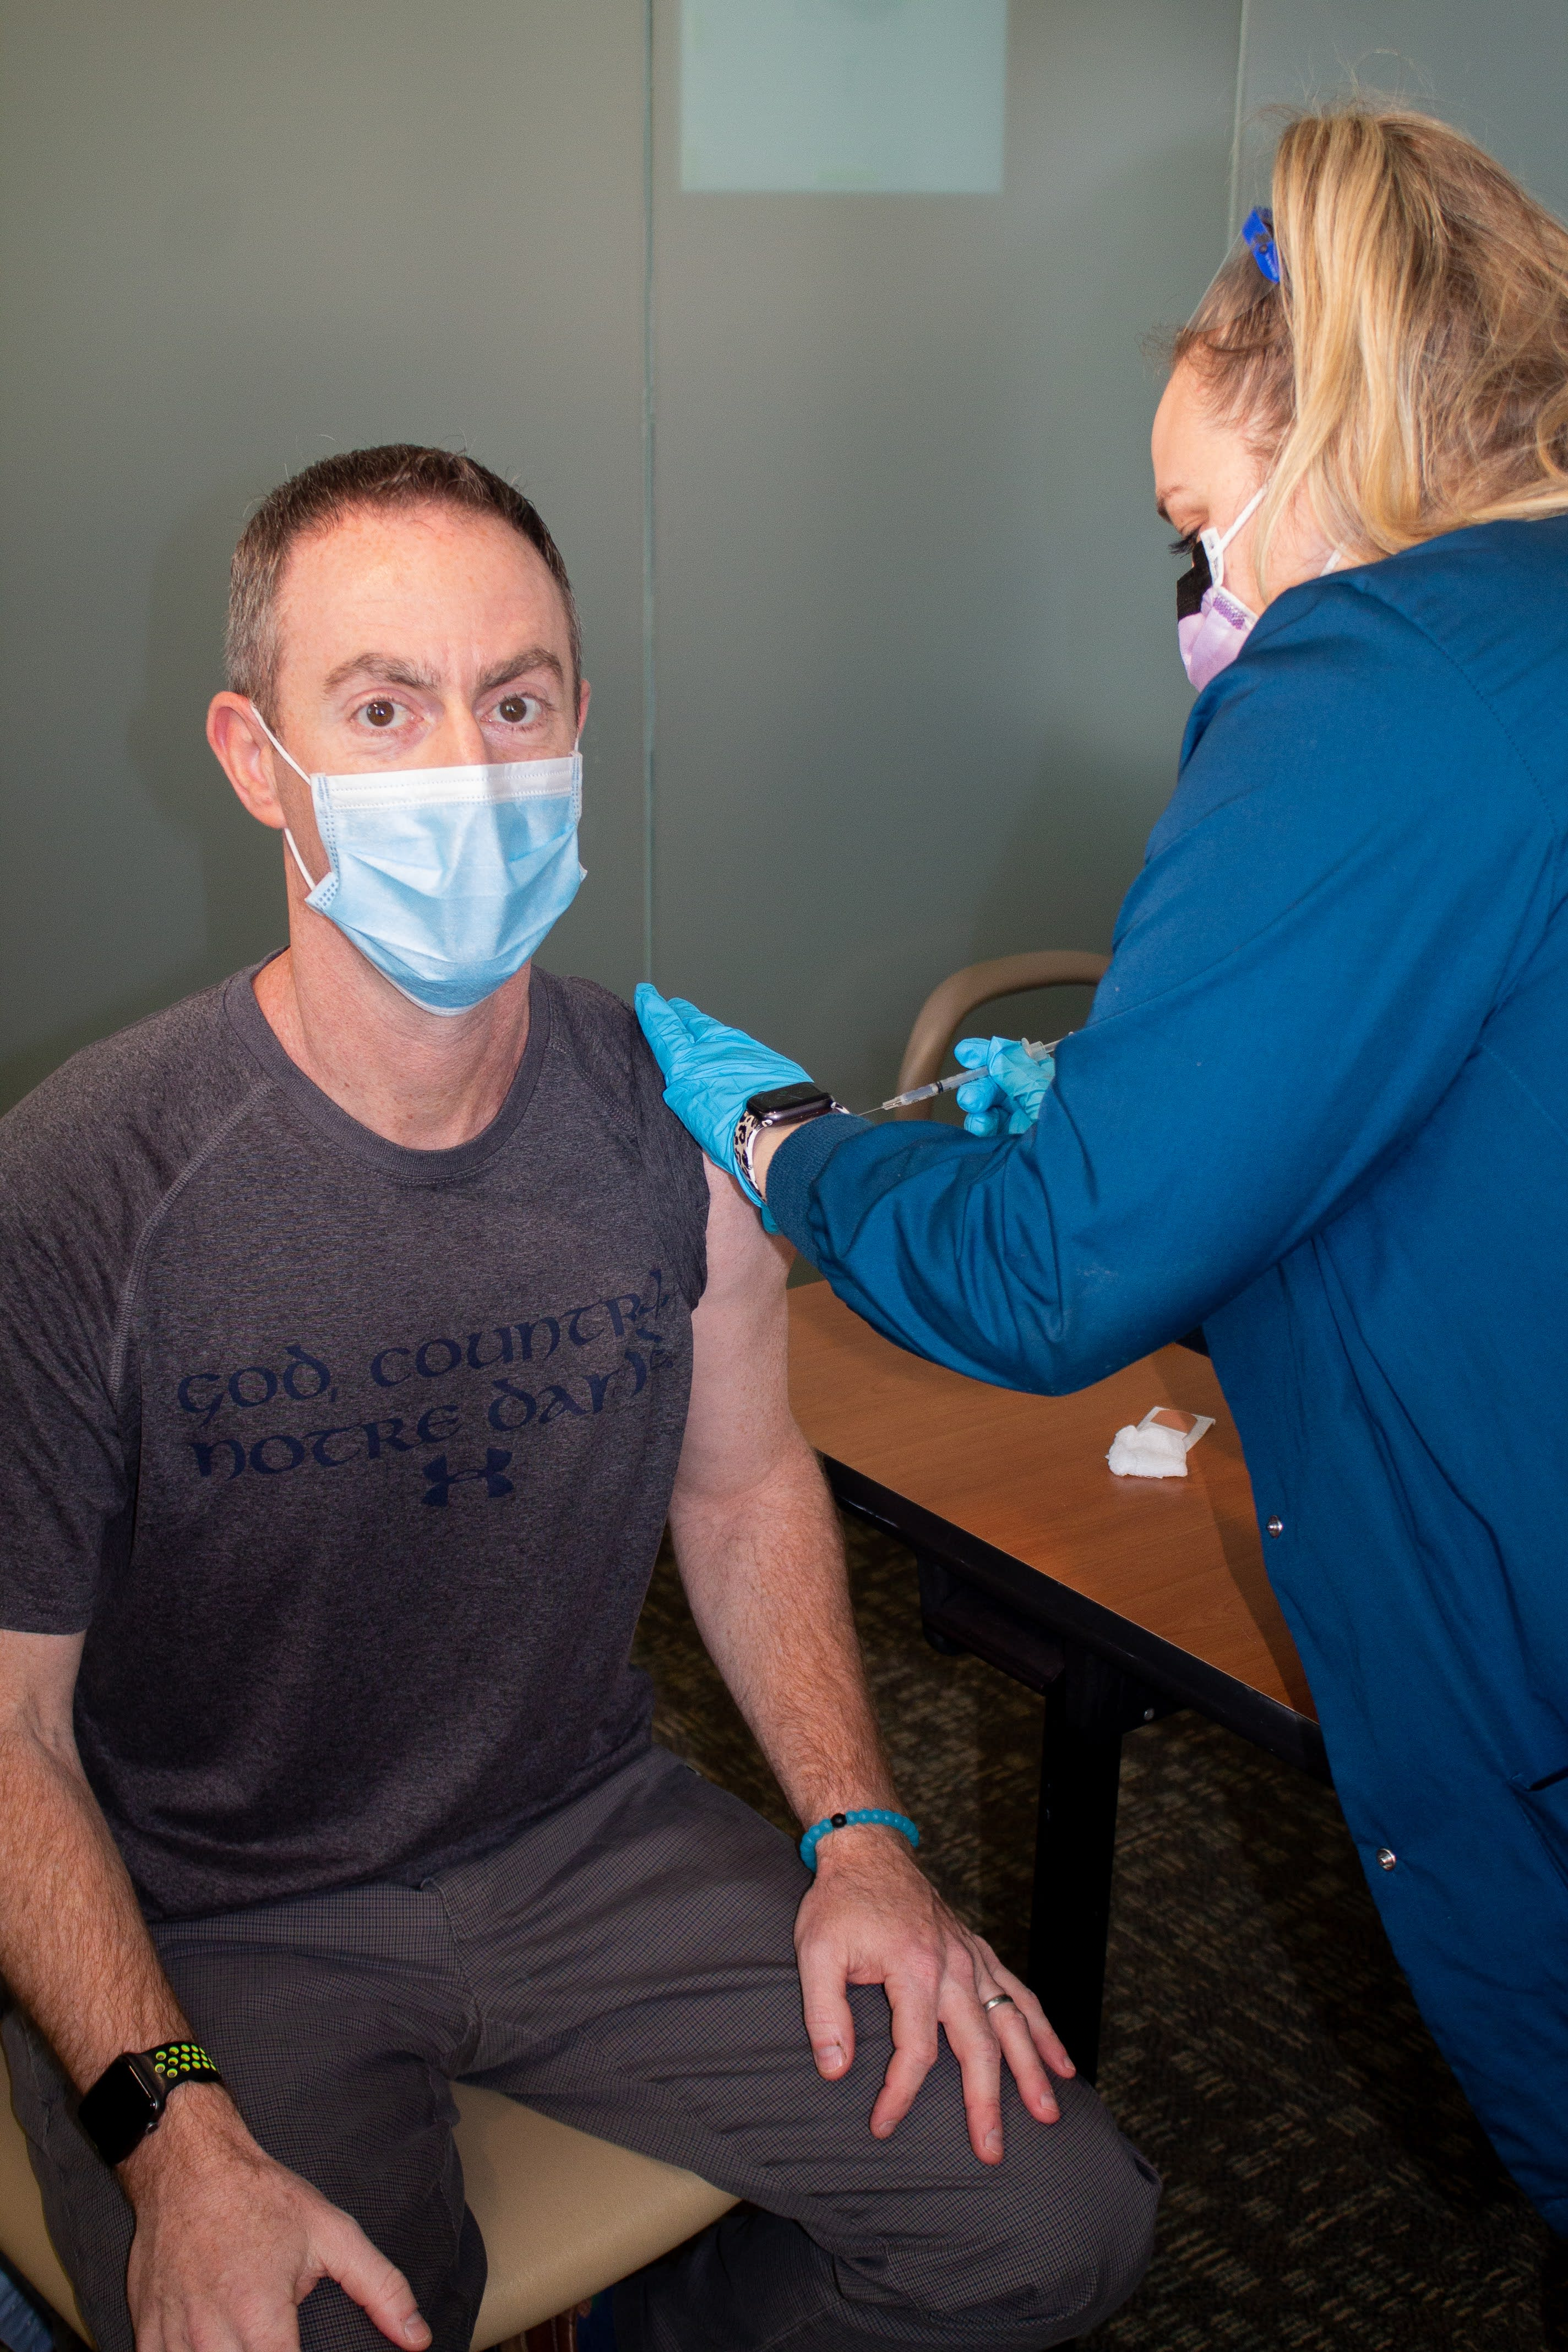 Dr. Bankoff gets the COVID-19 vaccine.